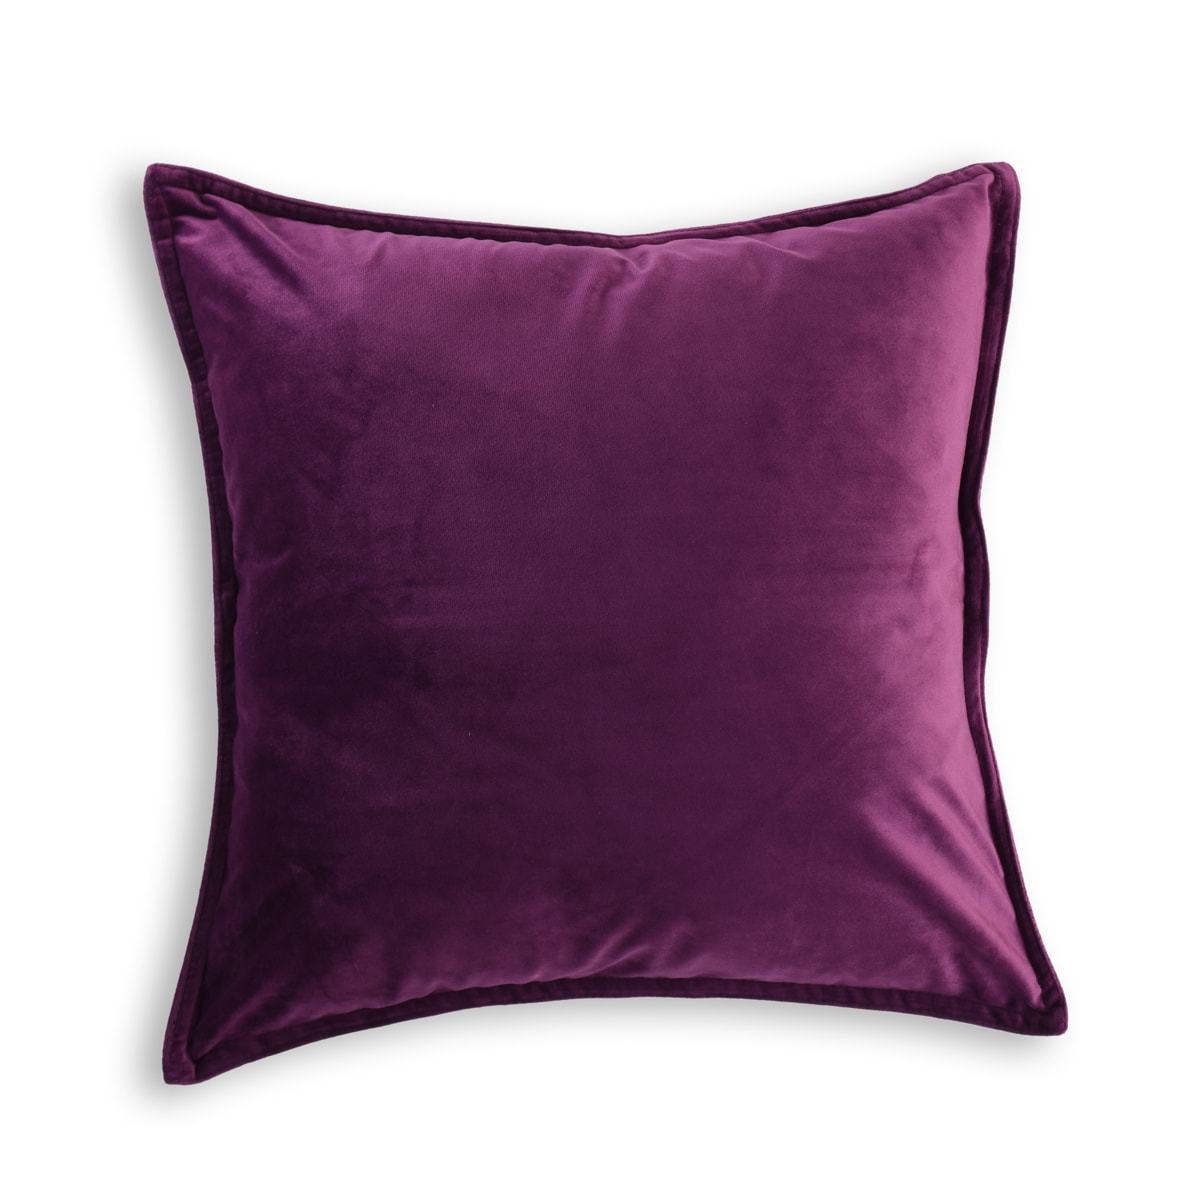 Velvet Square Cushion Covers 45 x 45 cm